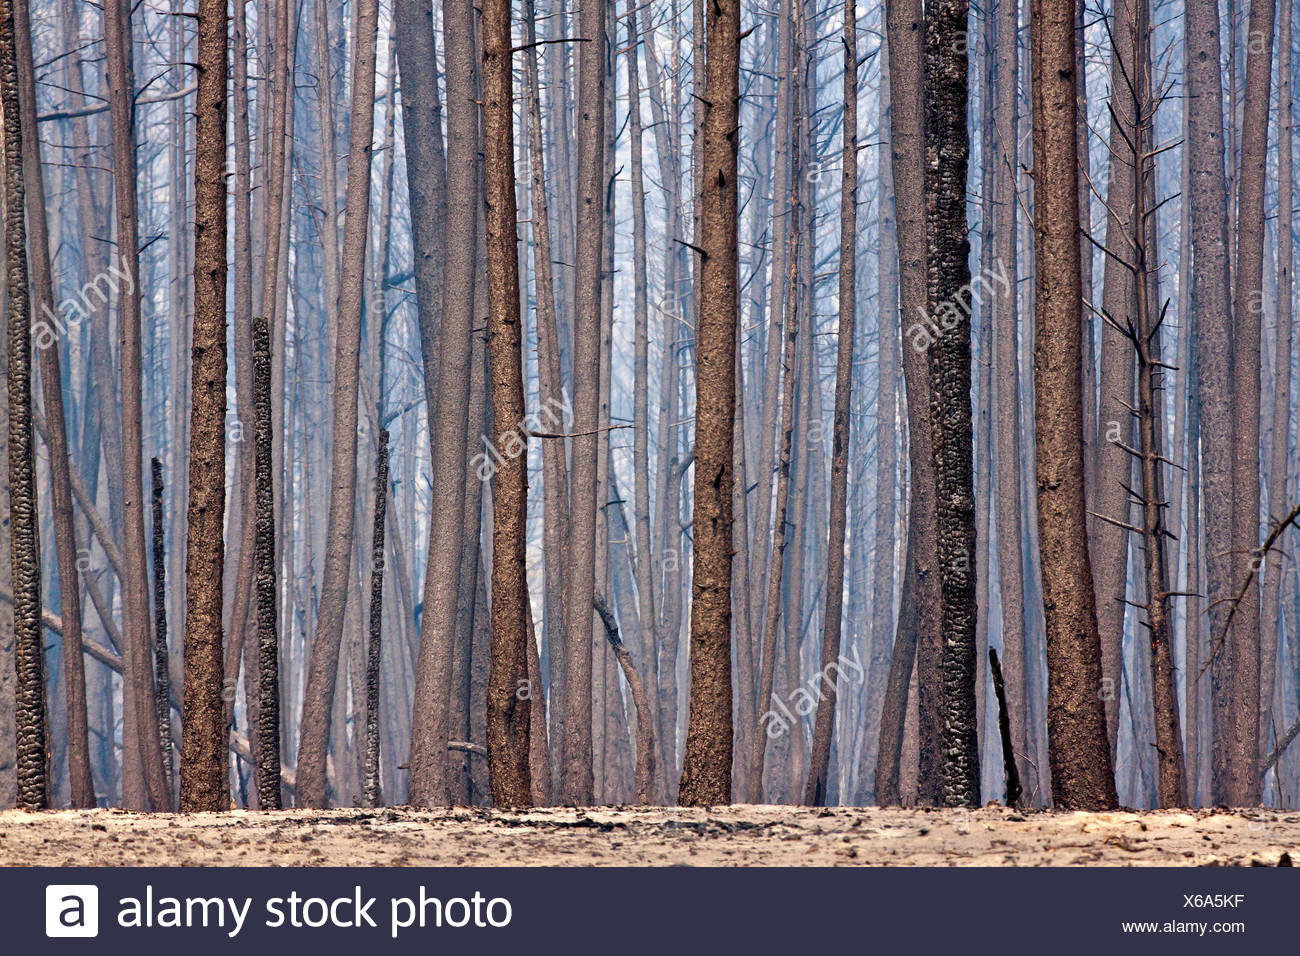 Forest Fire imagery in the Chilcotin region of British Columbia, Canada. - Stock Image